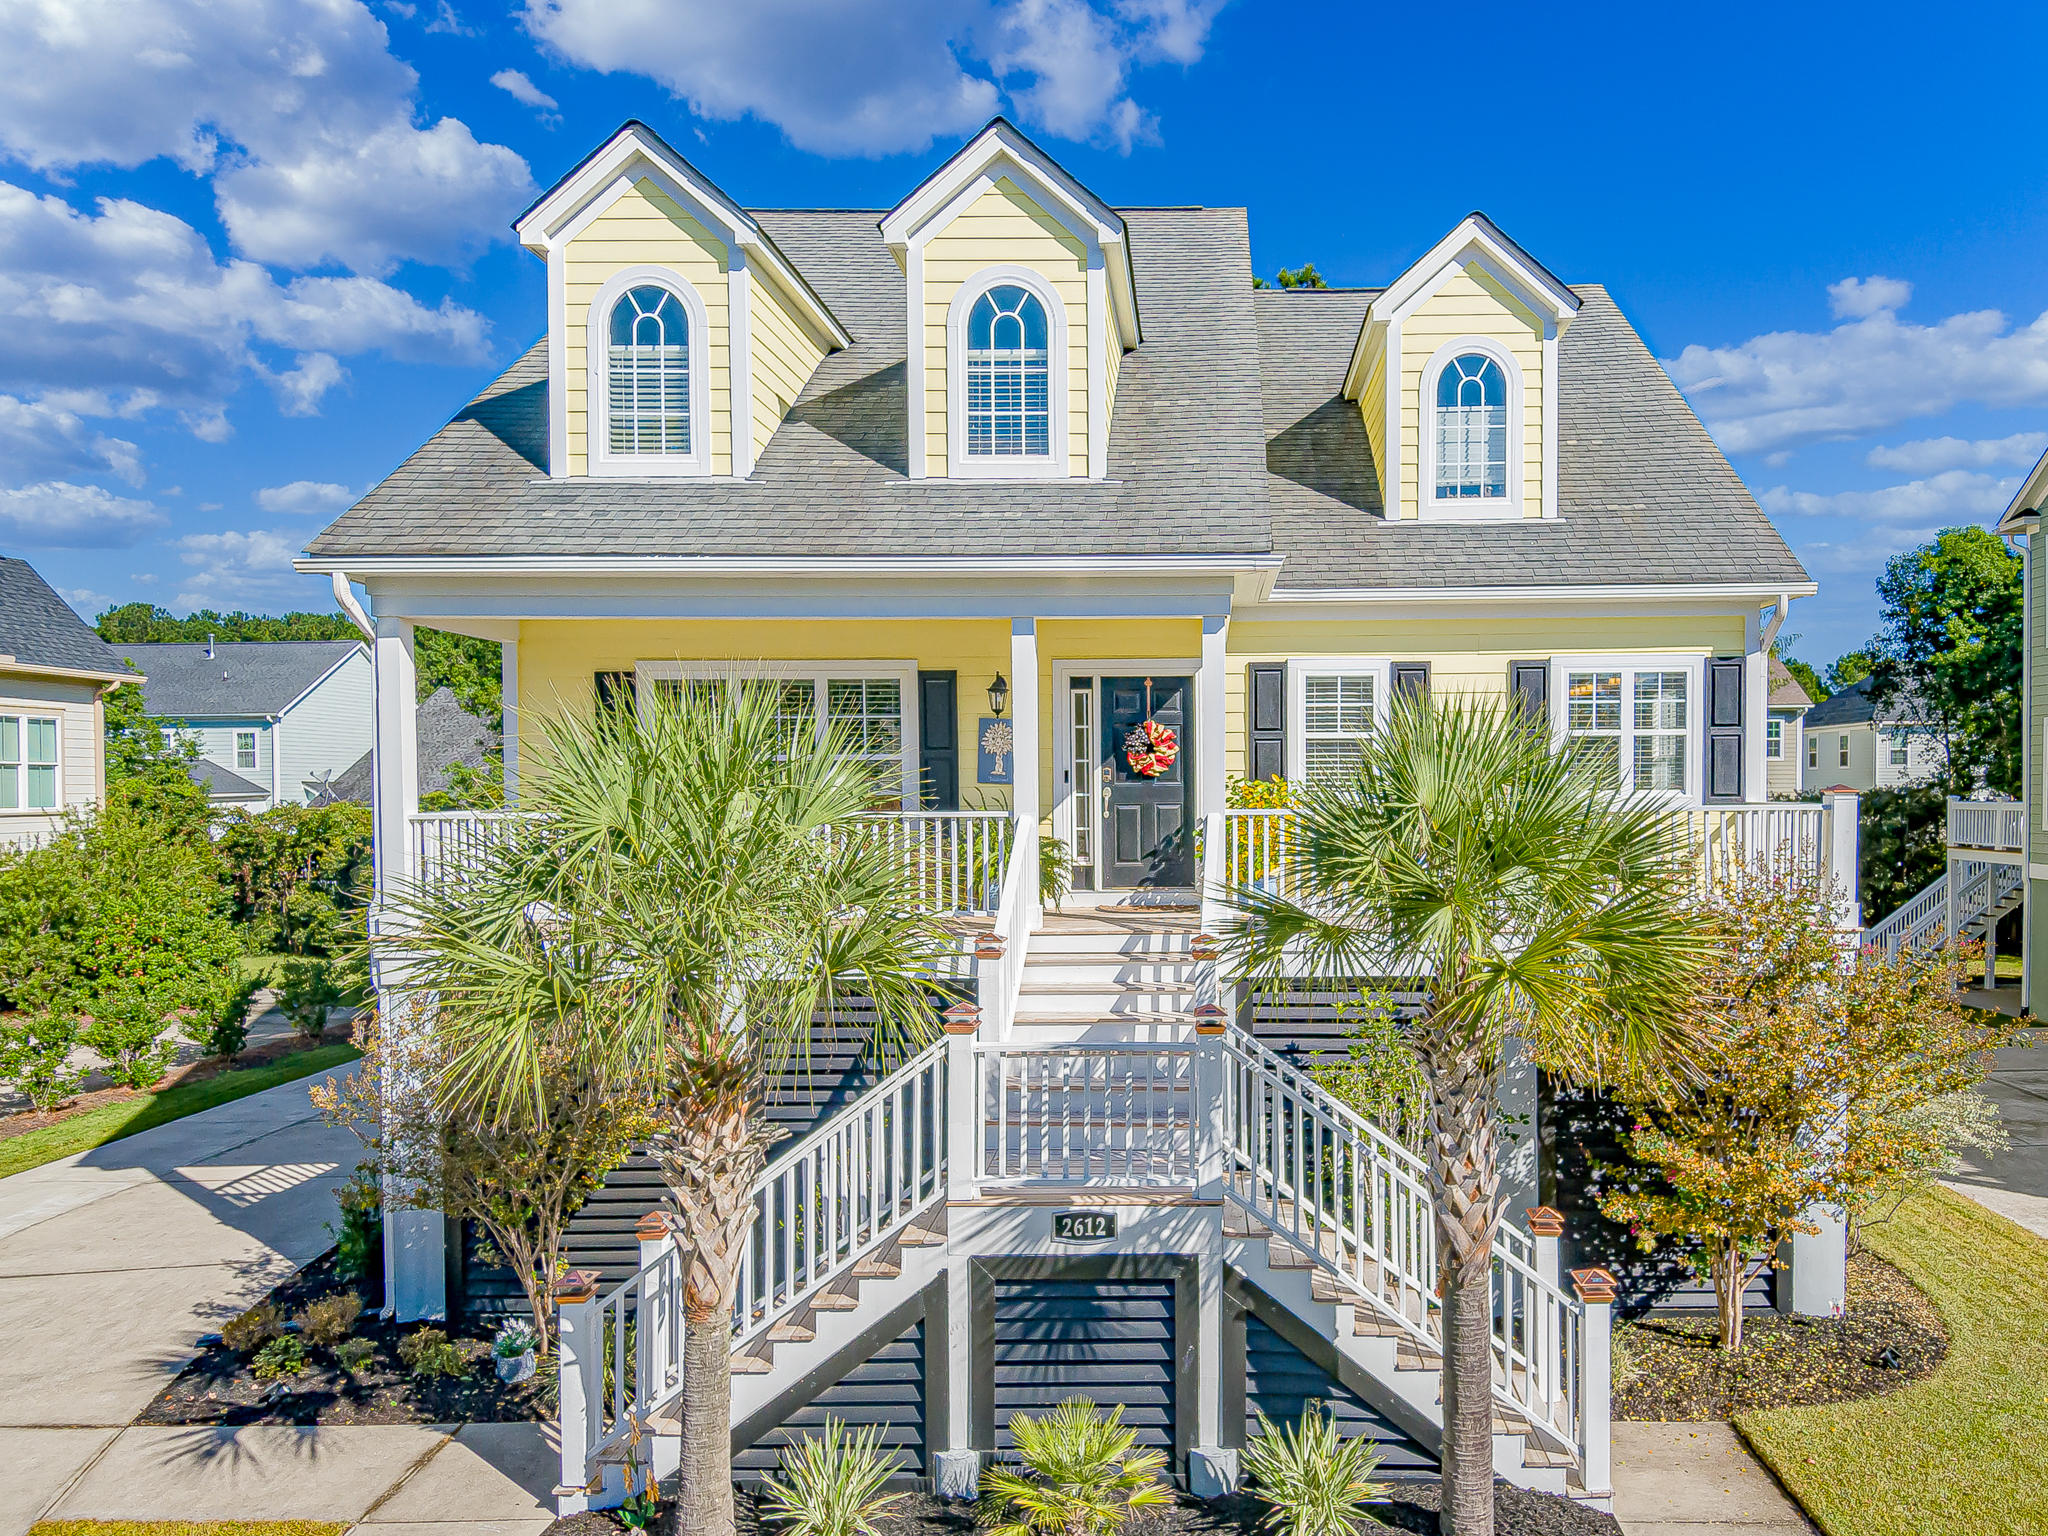 Rivertowne On The Wando Homes For Sale - 2612 Alderly, Mount Pleasant, SC - 47